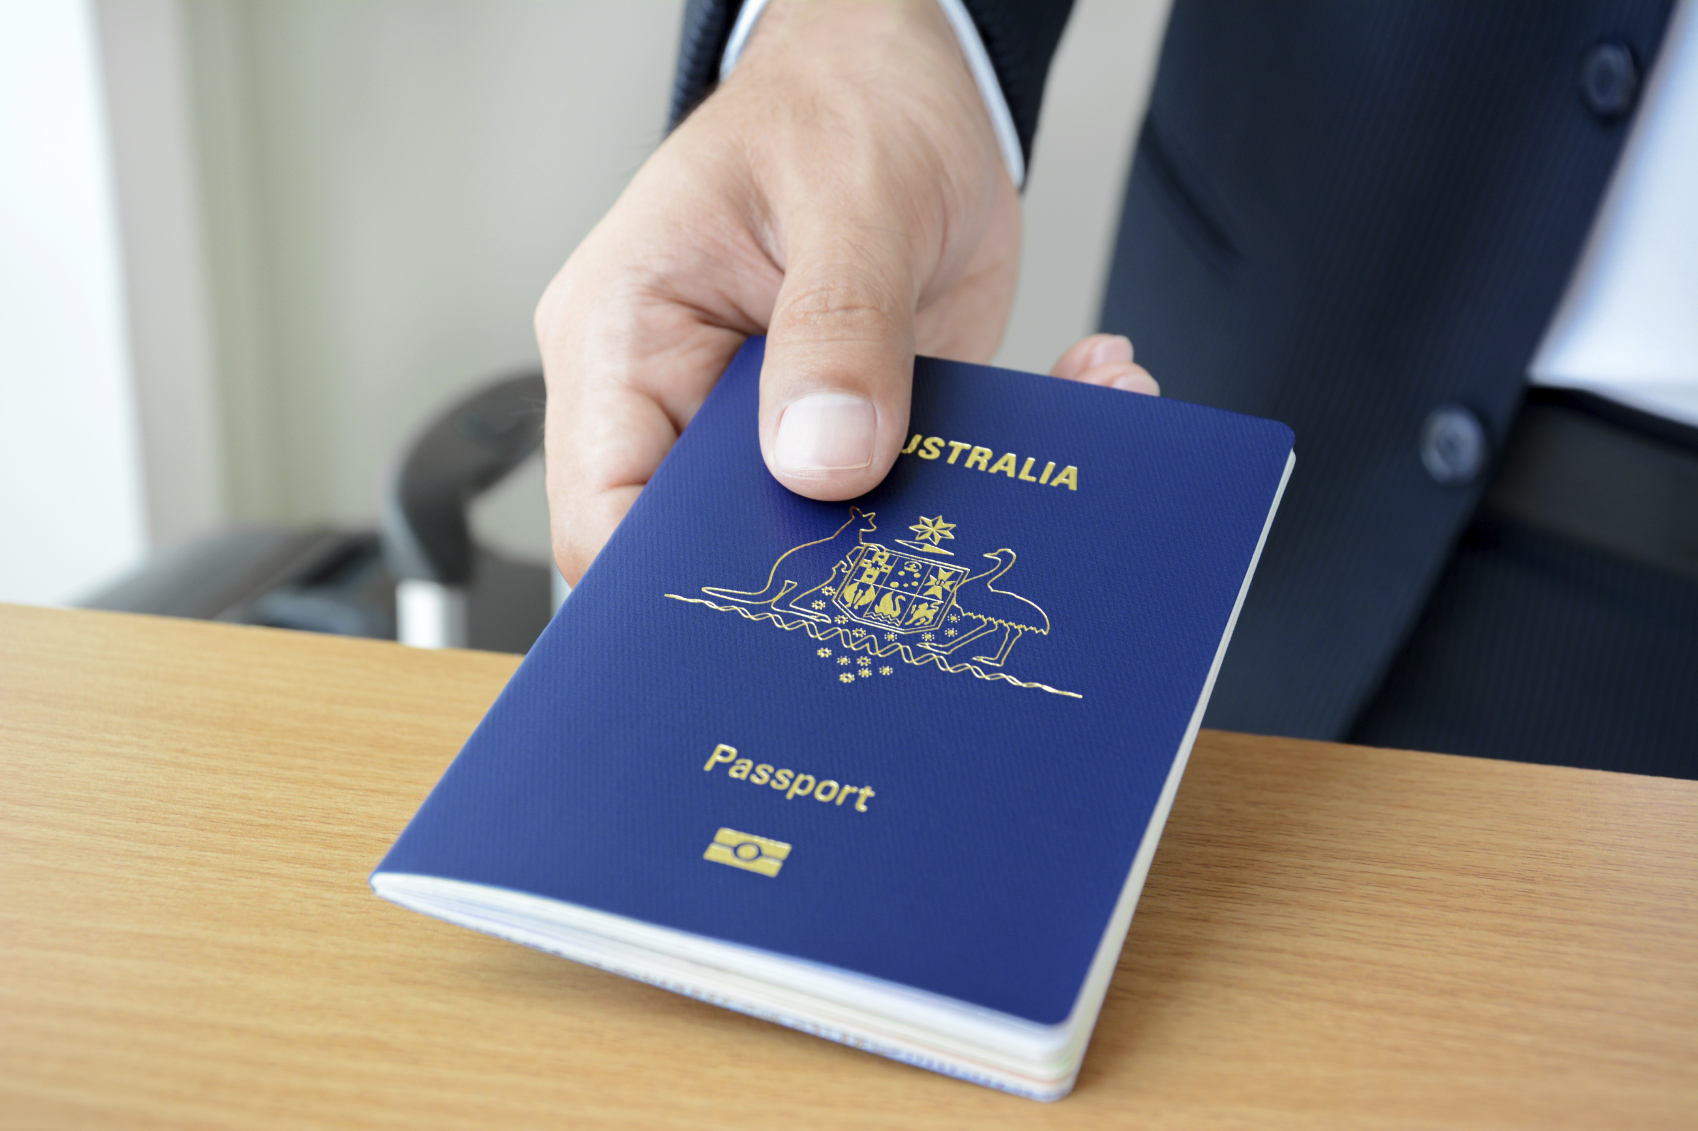 Photo requirements for australian passport Passport Photos - Australian Embassy, China